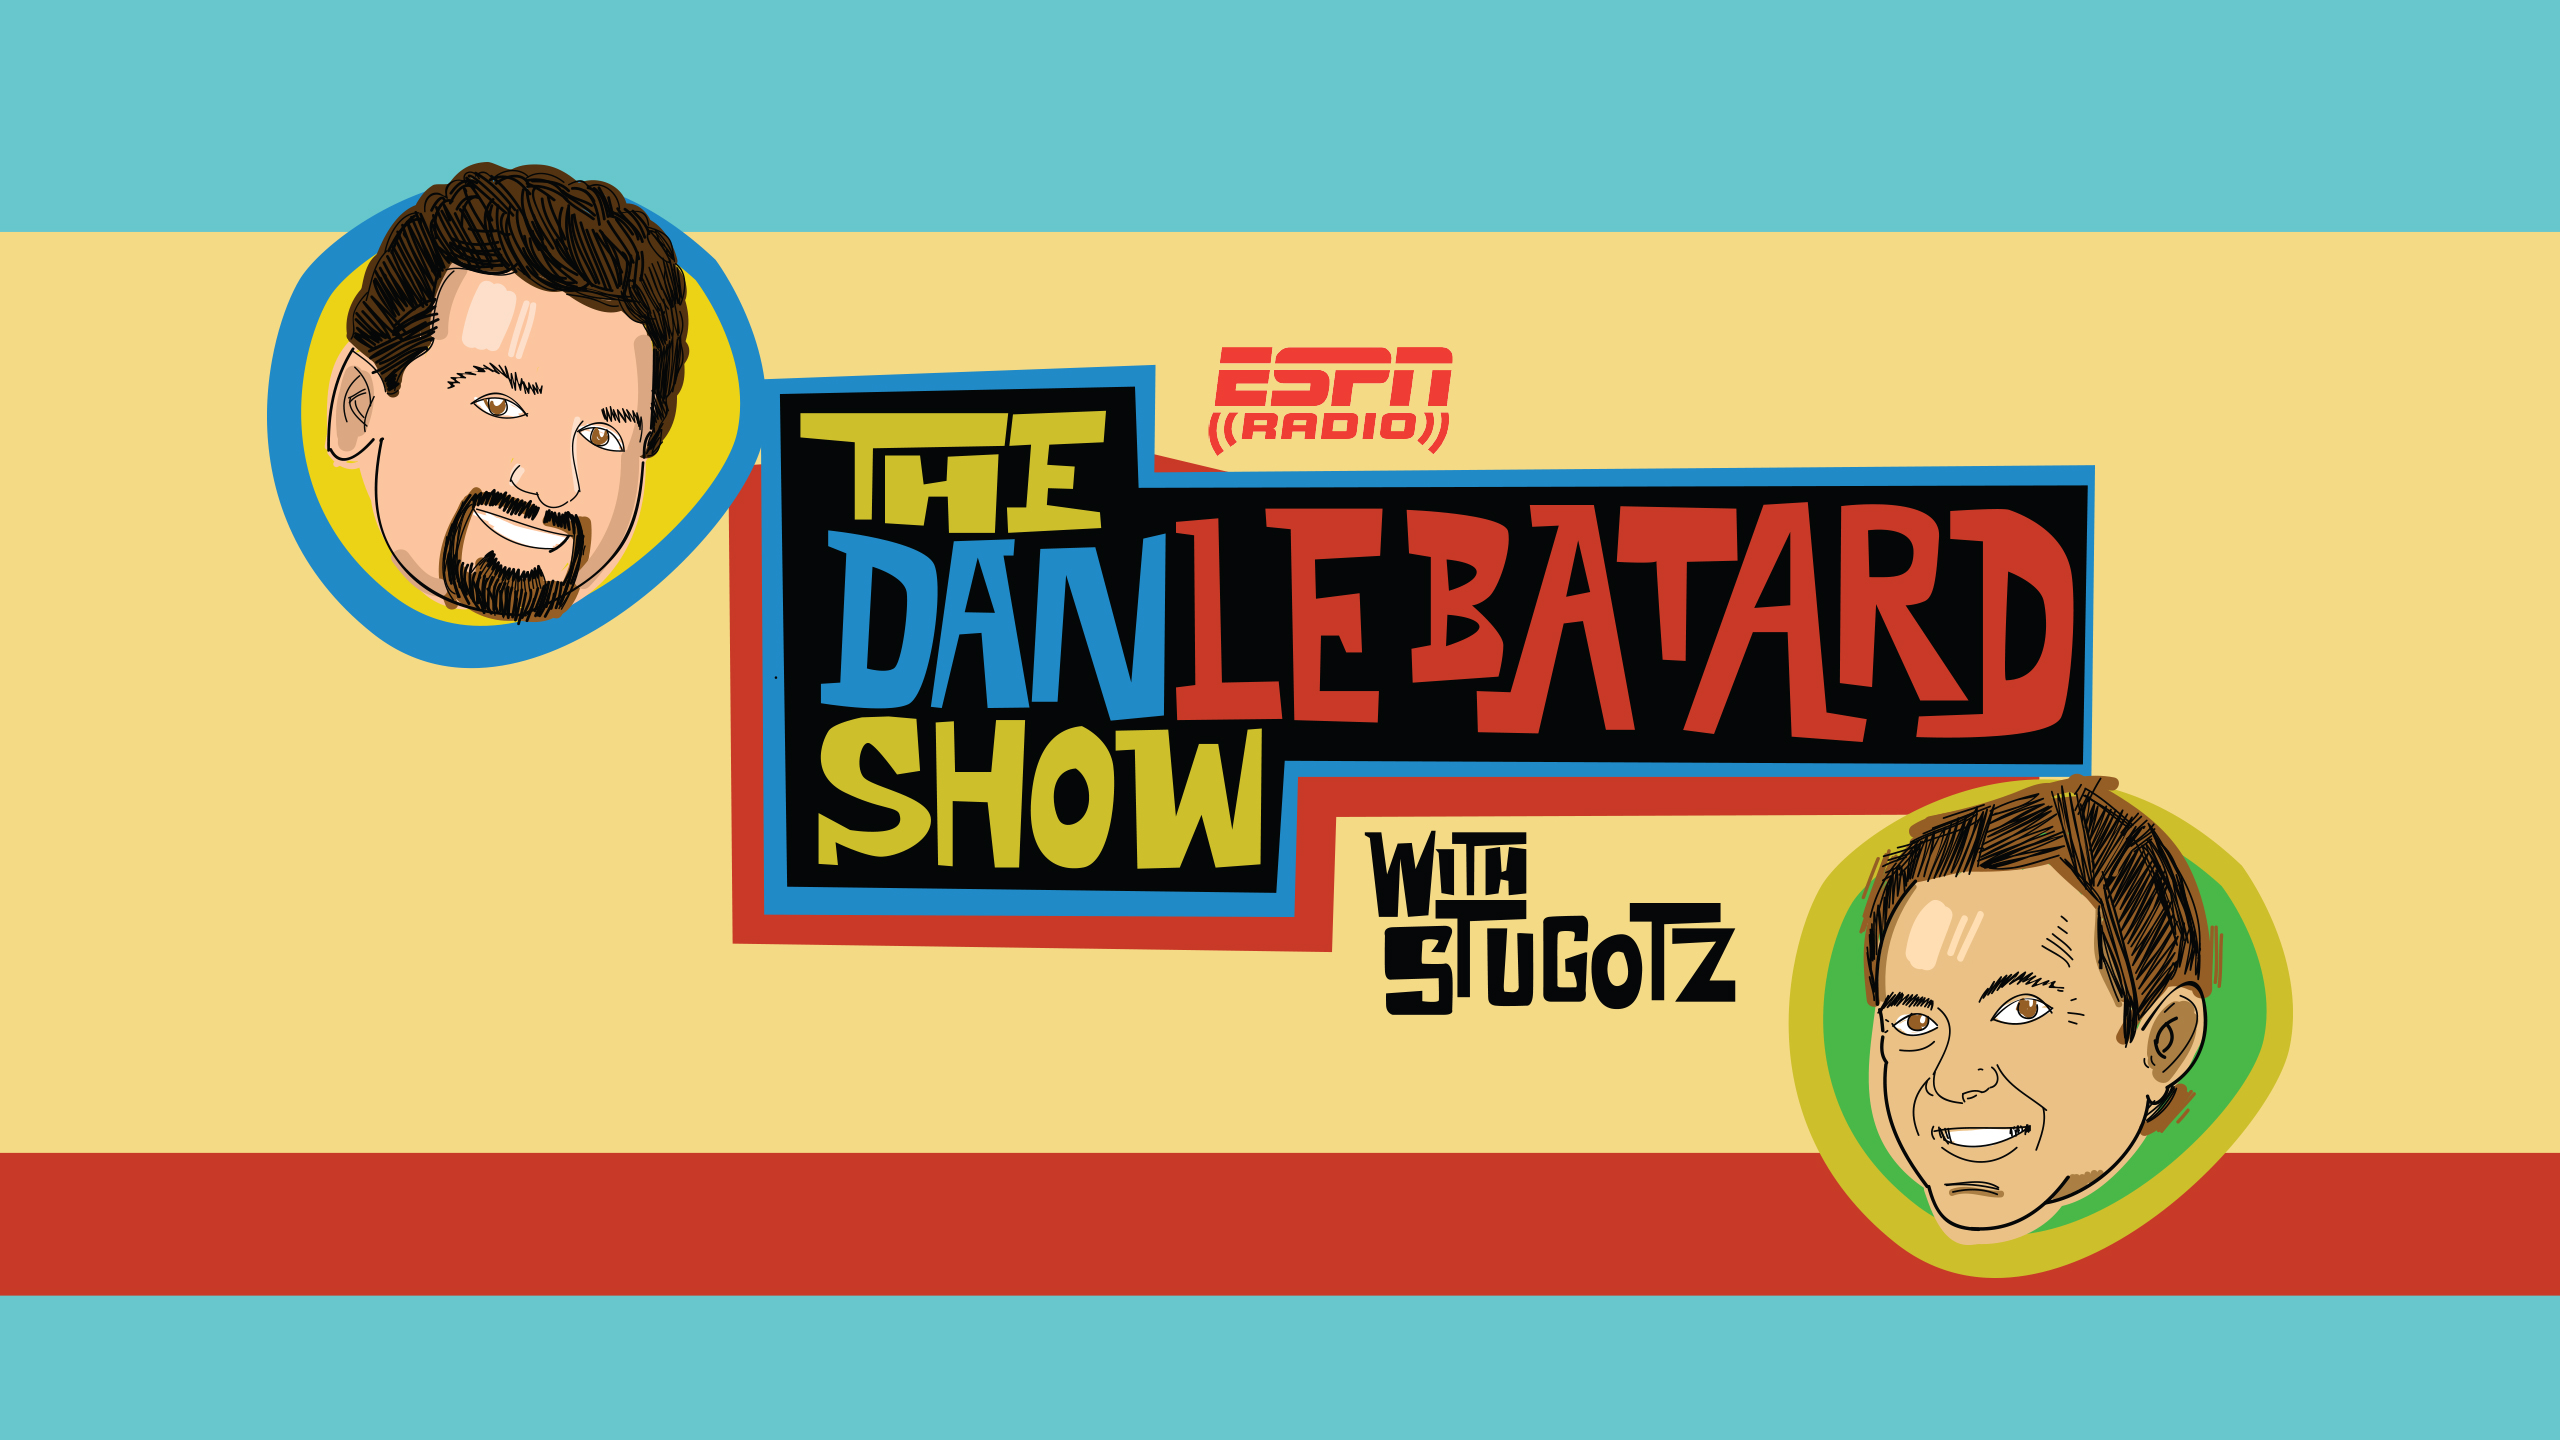 Mon, 12/17 - The Dan Le Batard Show with Stugotz Presented by Progressive